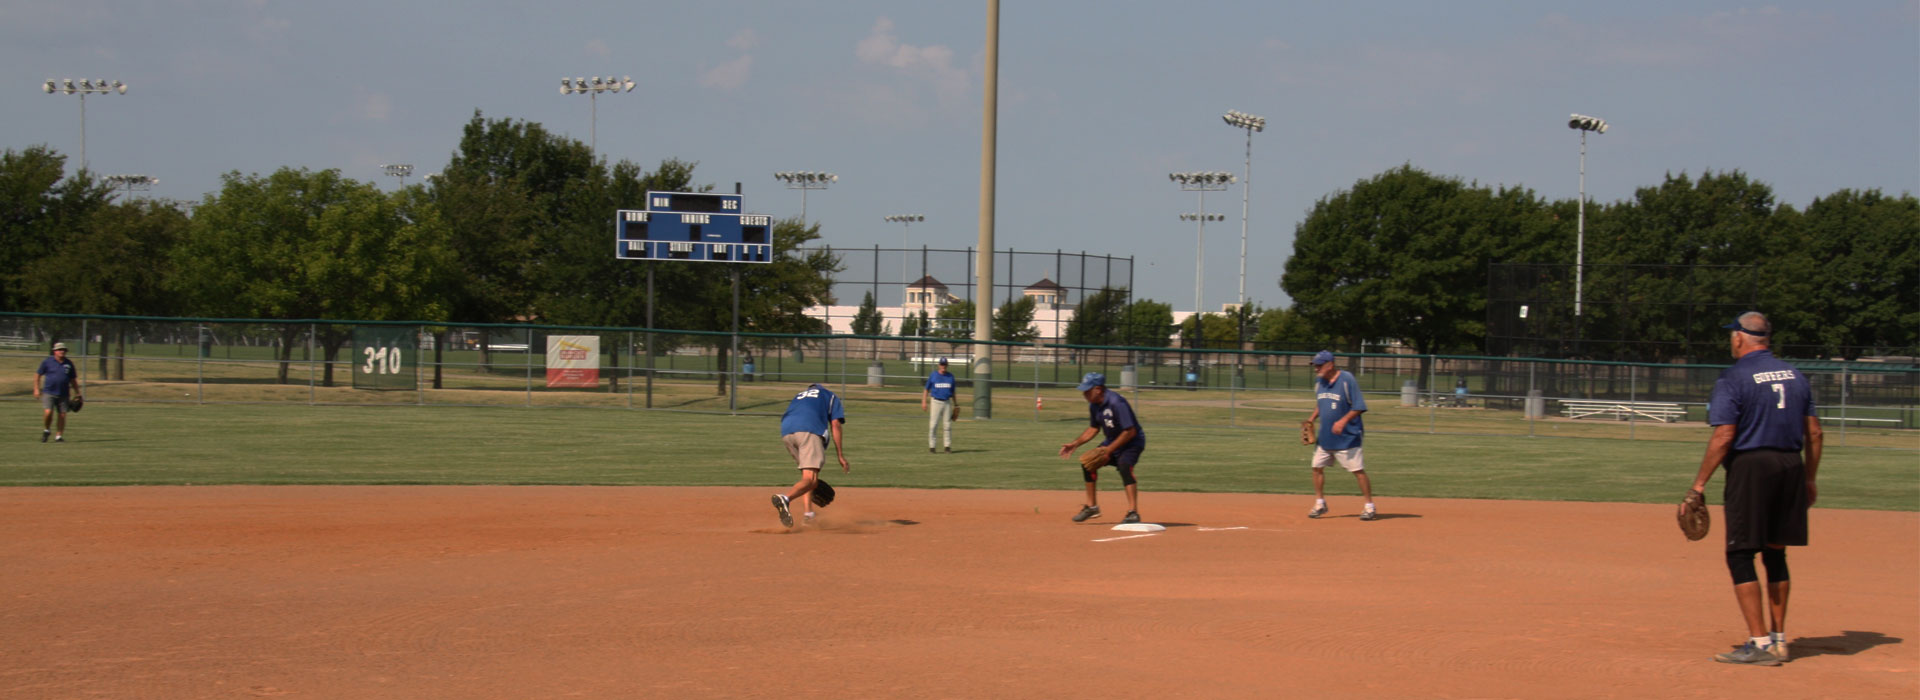 METROPLEX SENIOR CITIZENS<br \>SOFTBALL ASSOCIATION